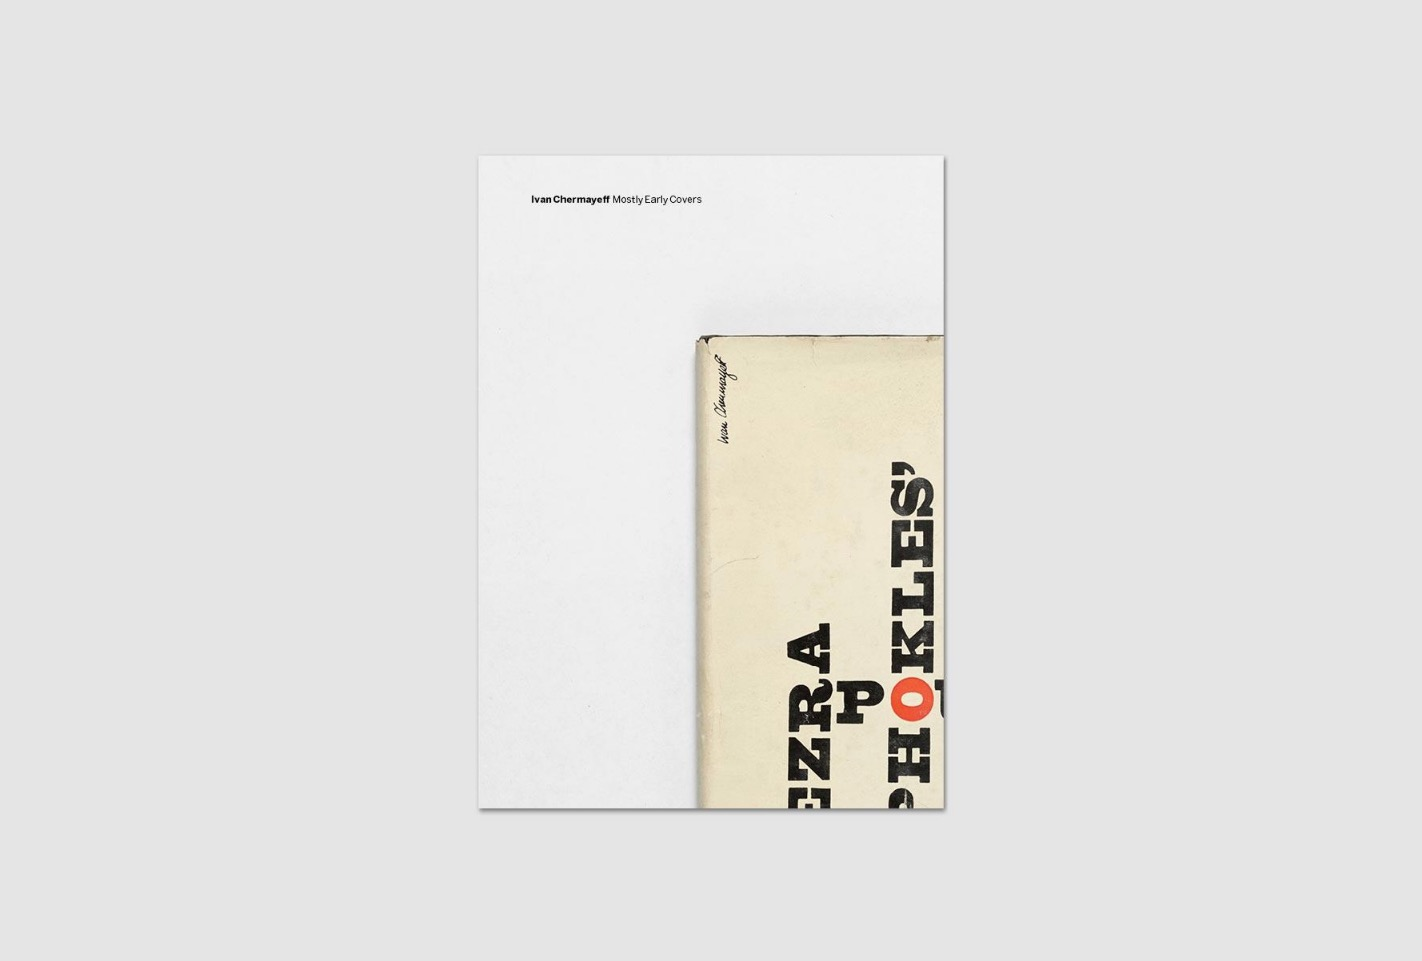 Ivan Chermayeff Mostly Early Covers 1